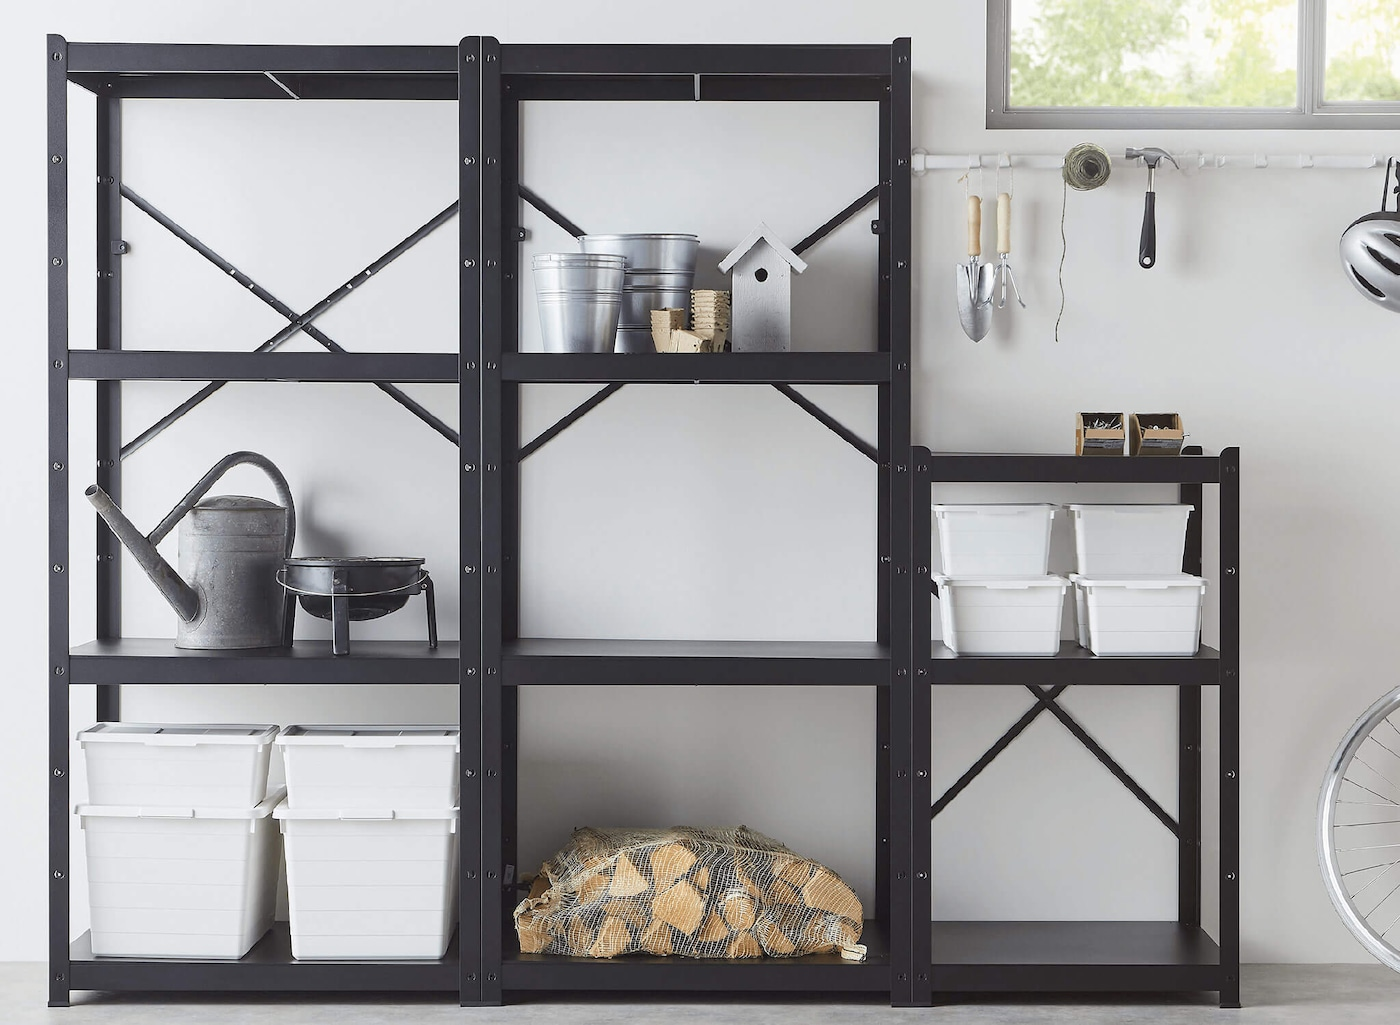 A black metal shelving system with three sections, housing storage boxes, a watering can, and firewood against a white wall.